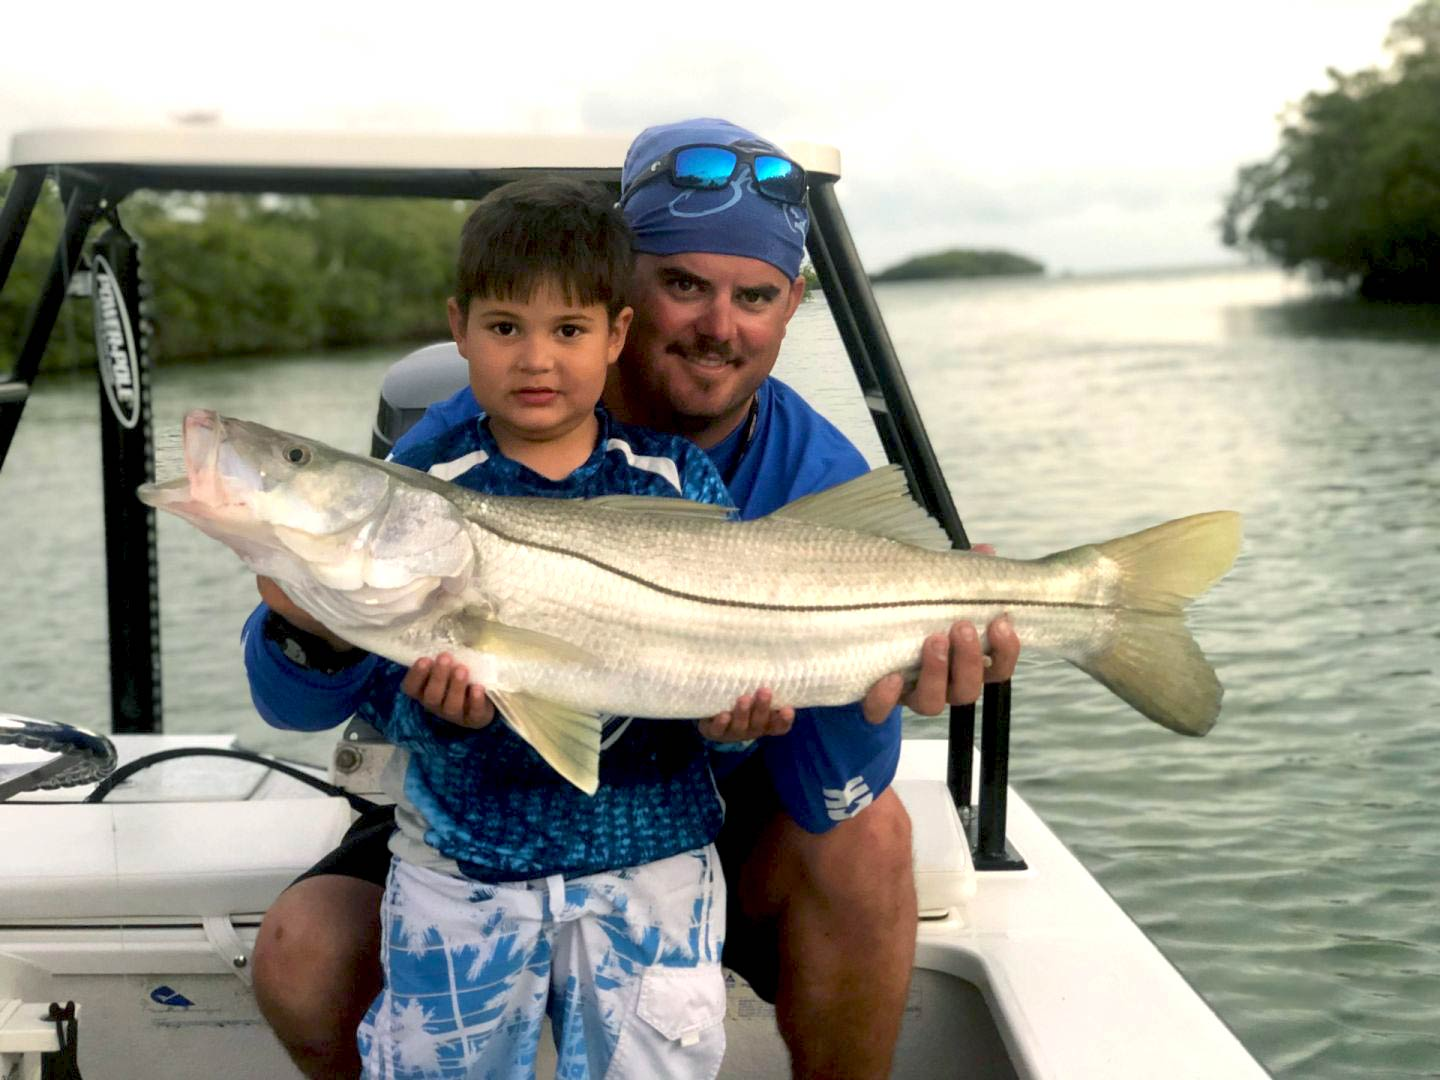 A man and a child holding a Snook in the wetlands of the Everglades, Florida